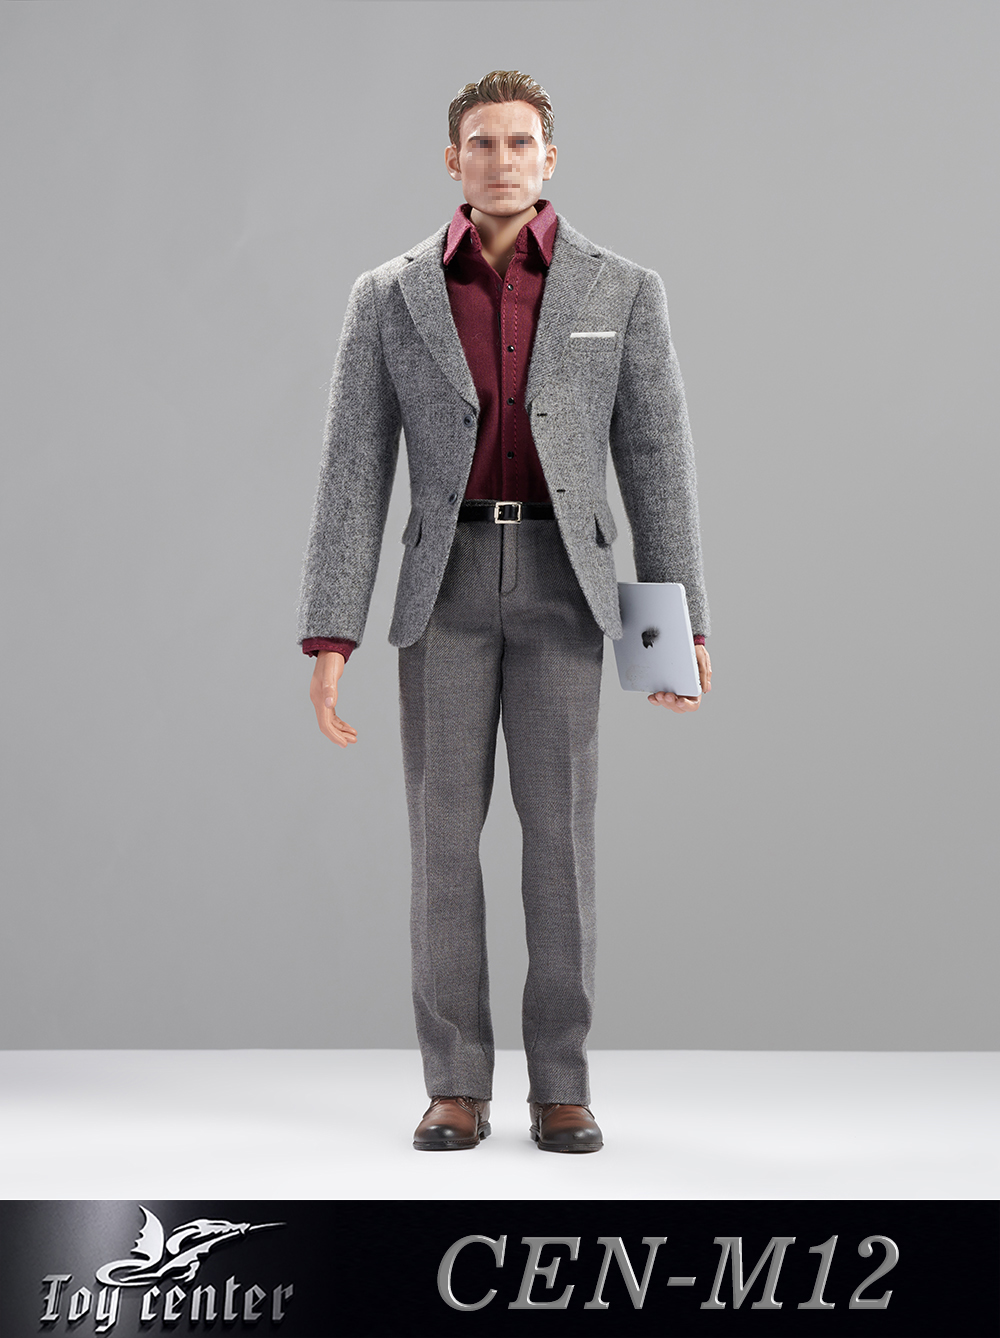 clothes - NEW PRODUCT: Toy center: 1/6 US team old casual suit CEN-M12# 16064411